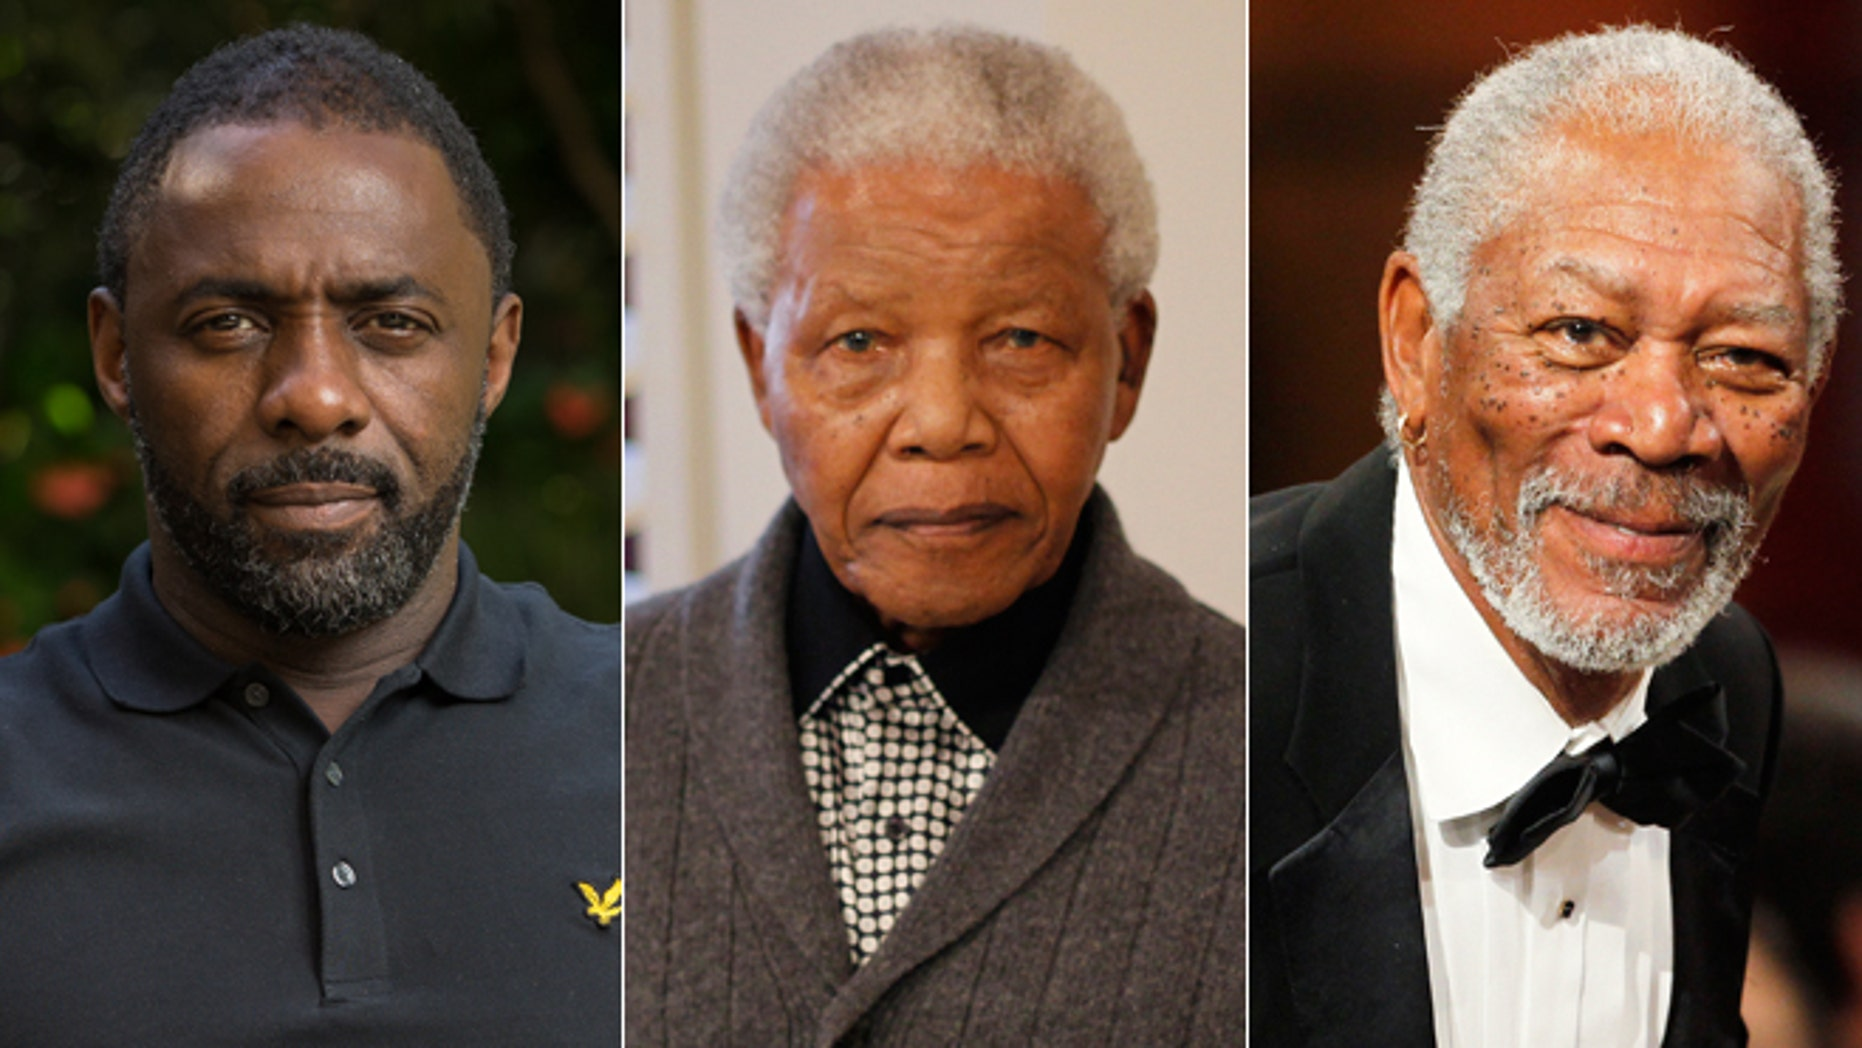 Idris Elba, left, and Morgan Freeman, right, reacted to news of Nelson Mandela's death, center.